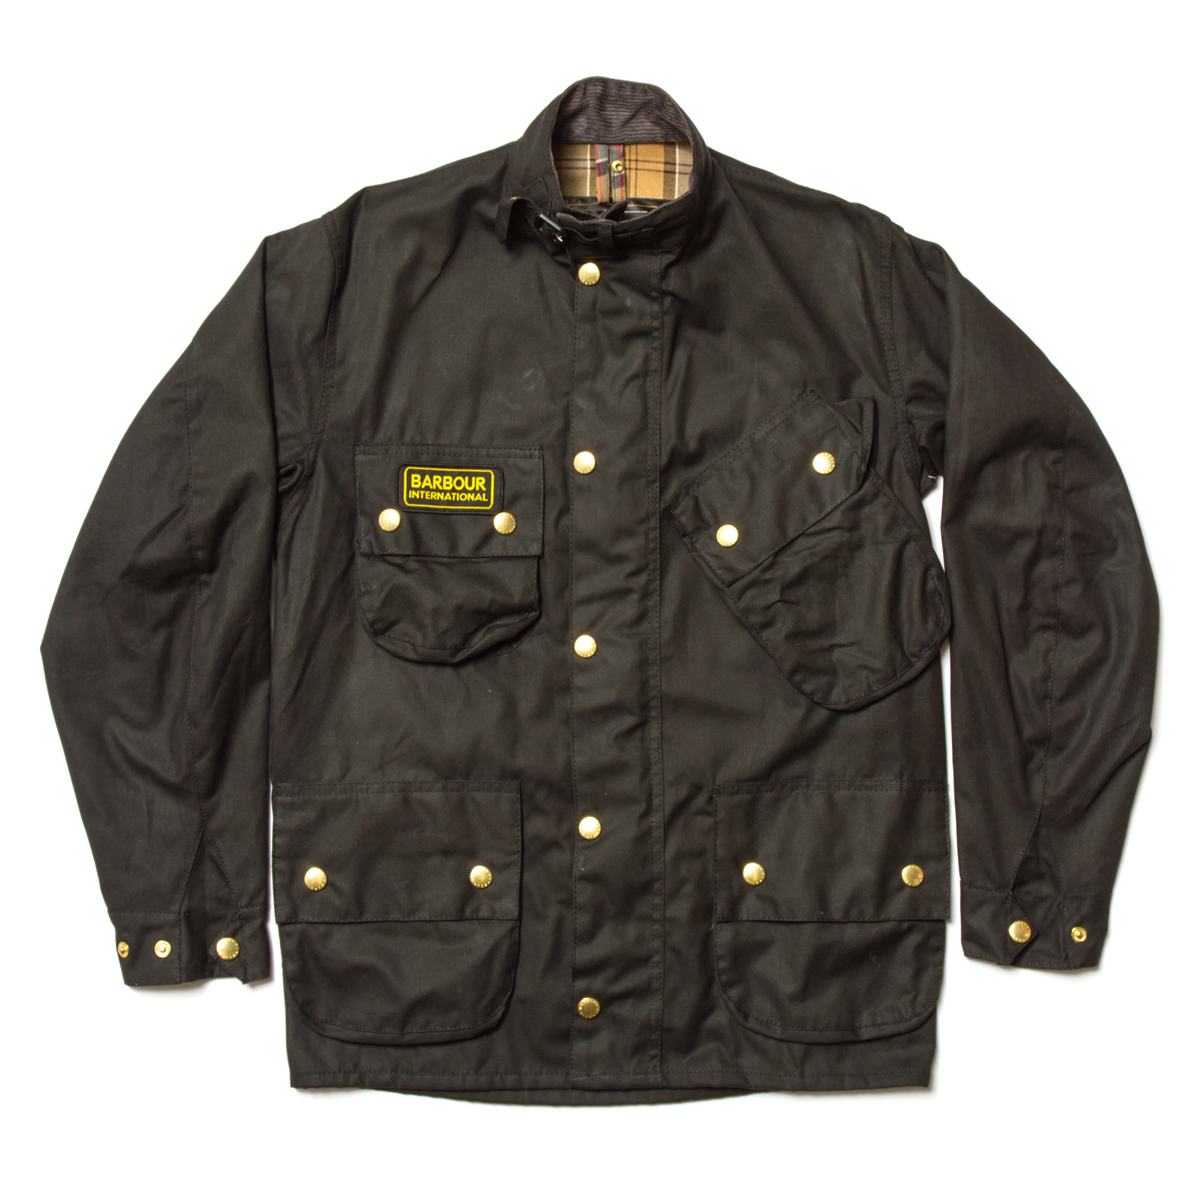 Barbour  Classic International Jacket  £249